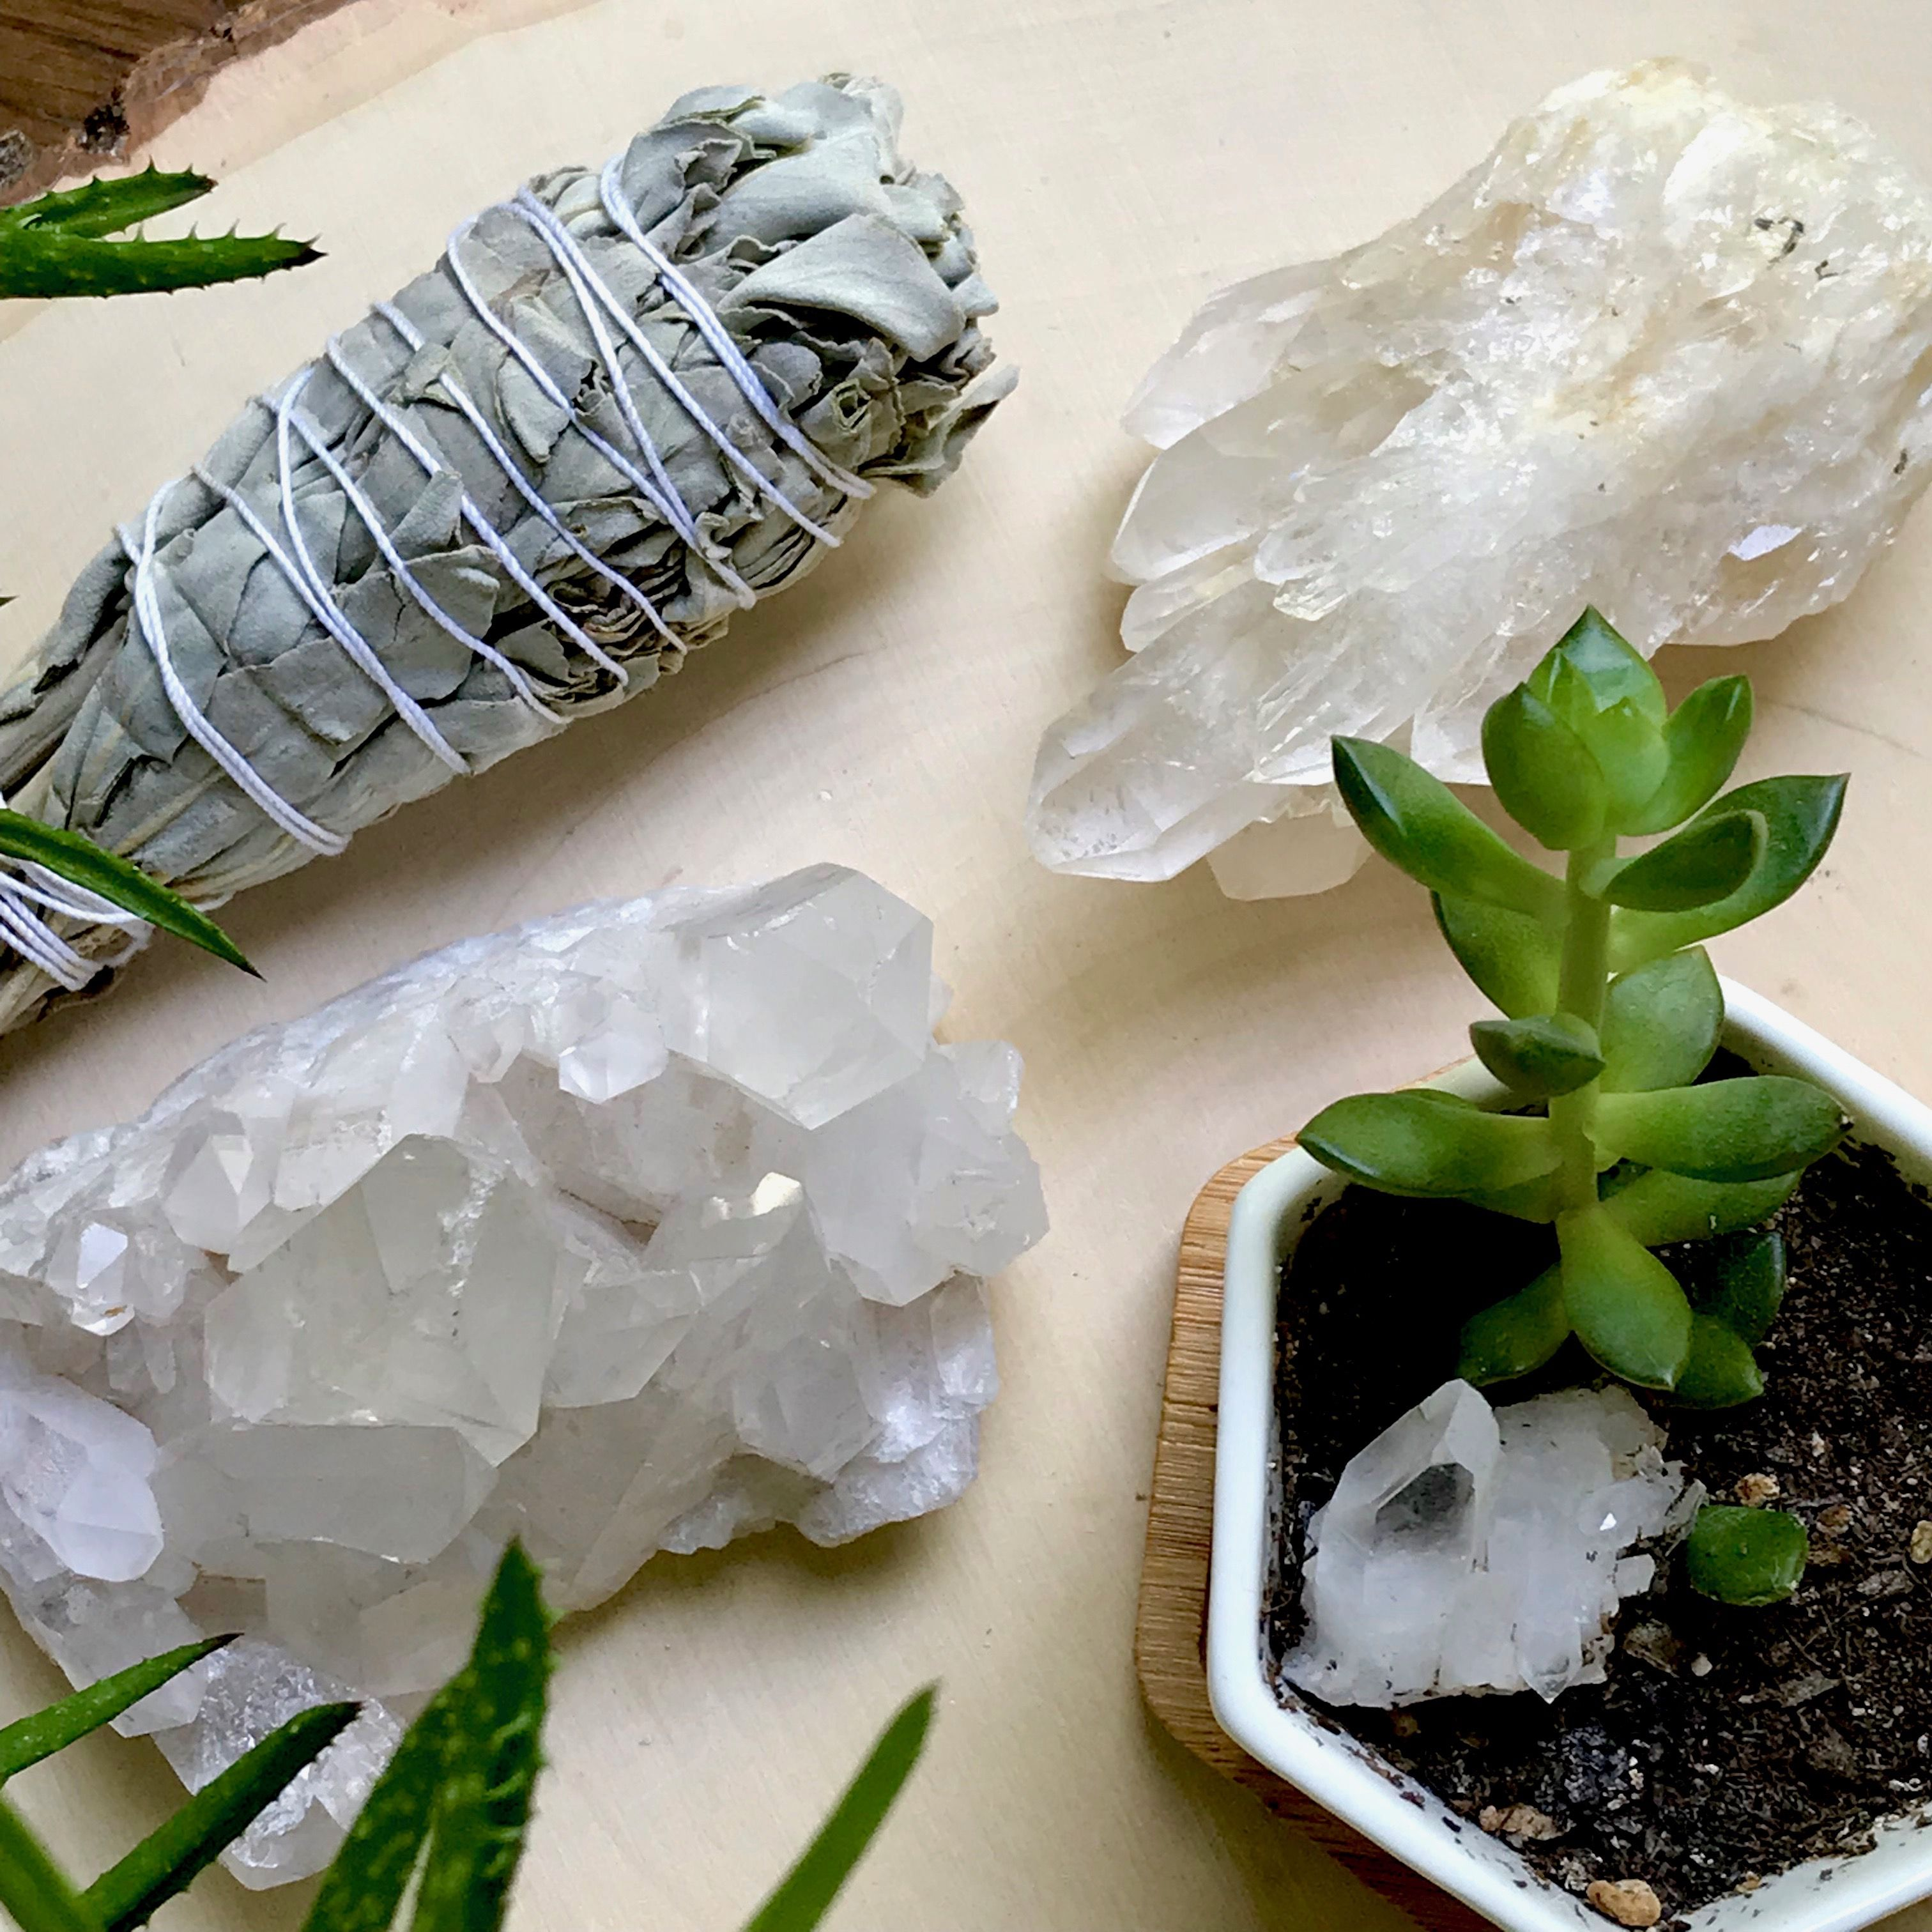 A quick sage smudge will help cleanse your crystals of